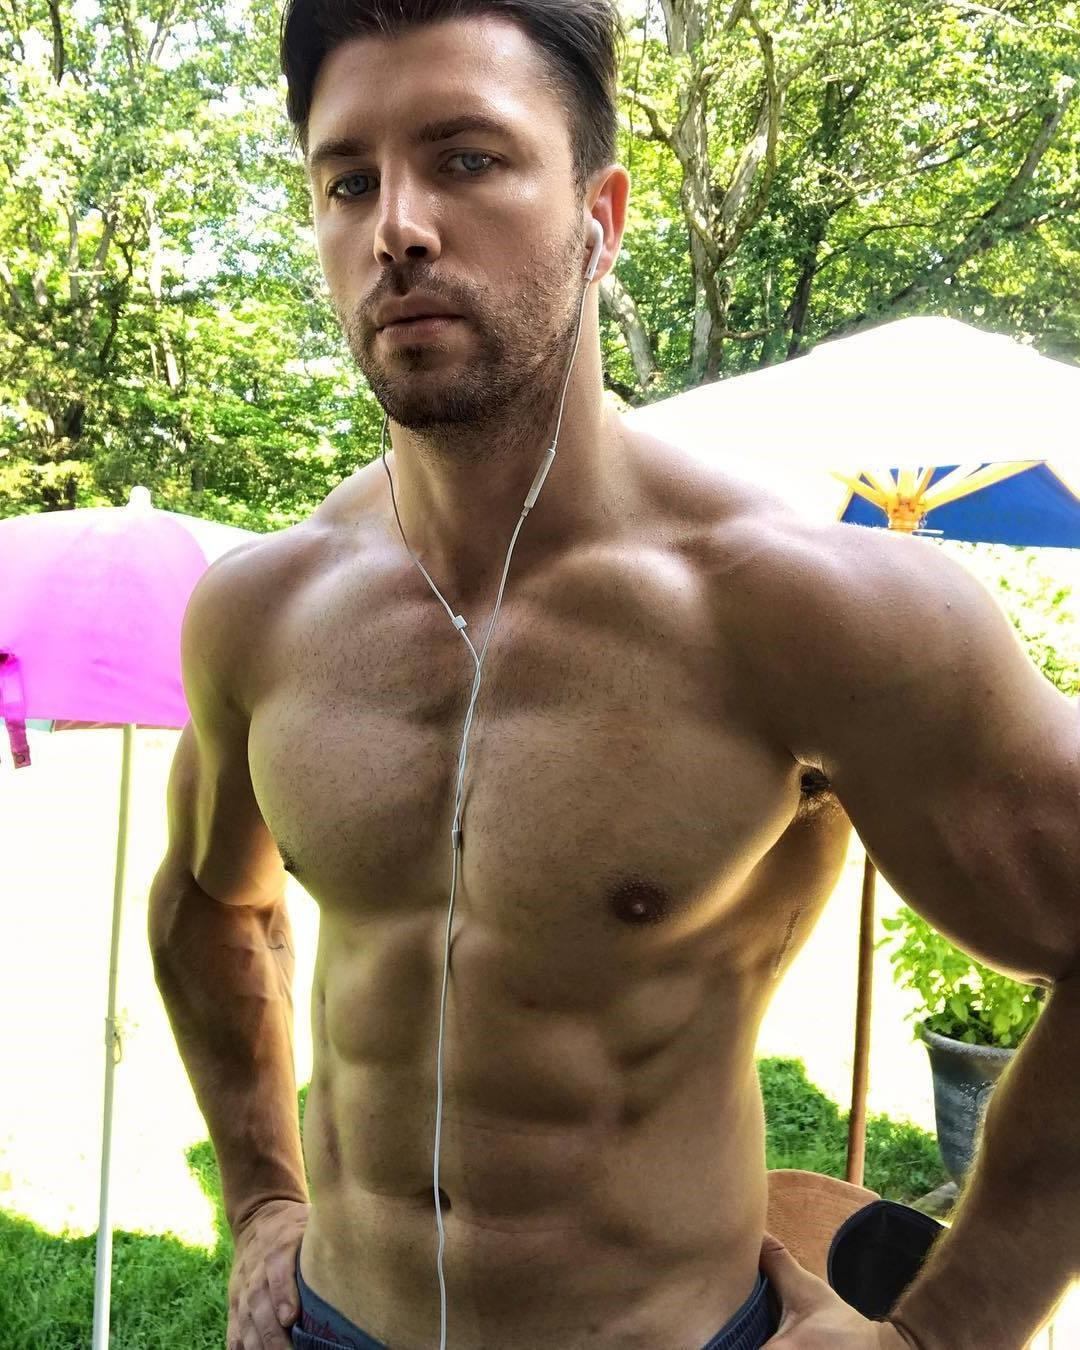 manly-bare-chest-daddy-listening-music-perky-pecs